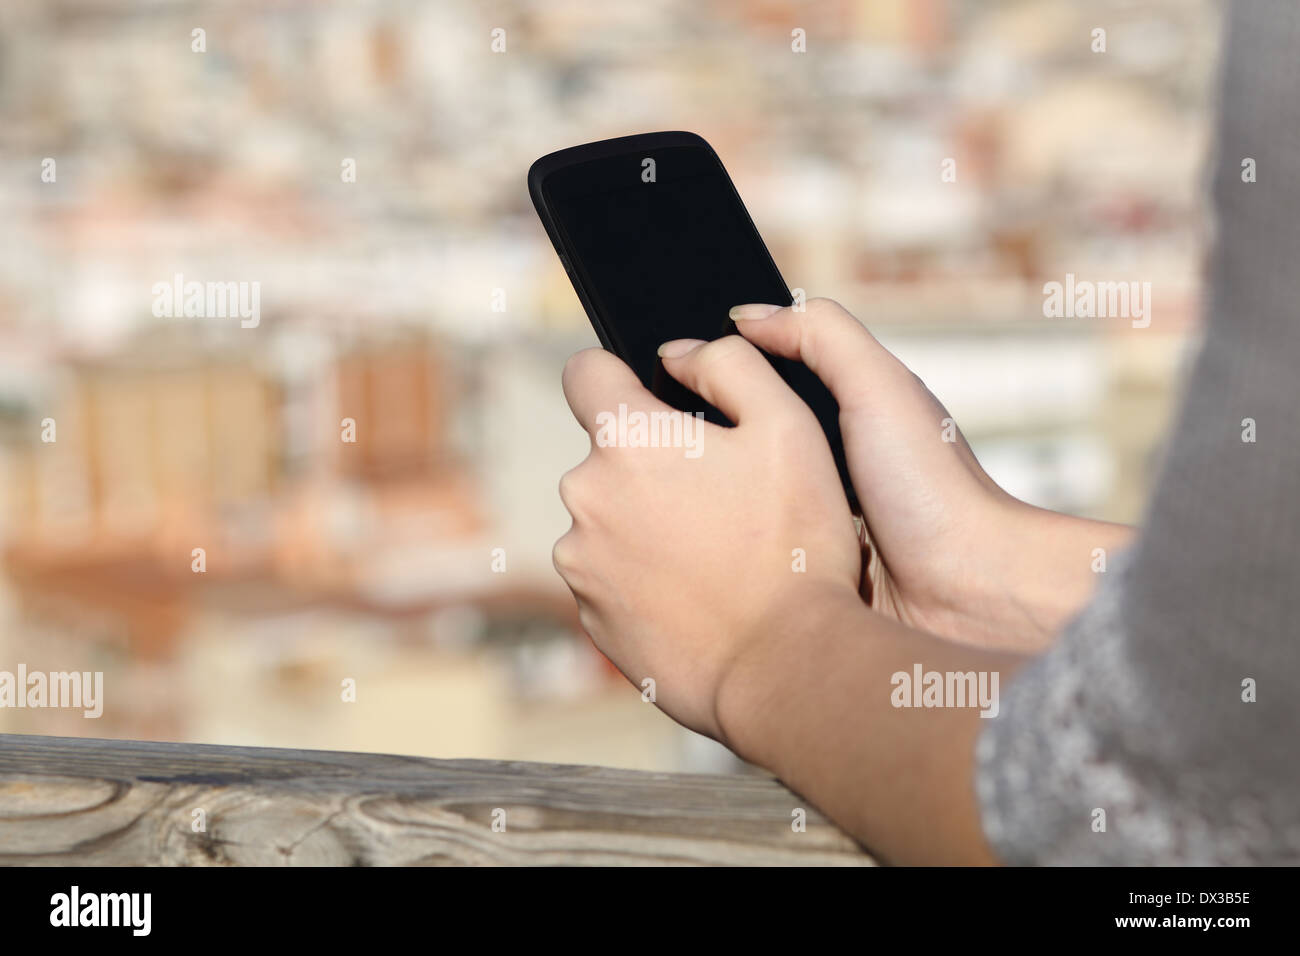 Woman hands texting on a smart phone screen with an urban background - Stock Image